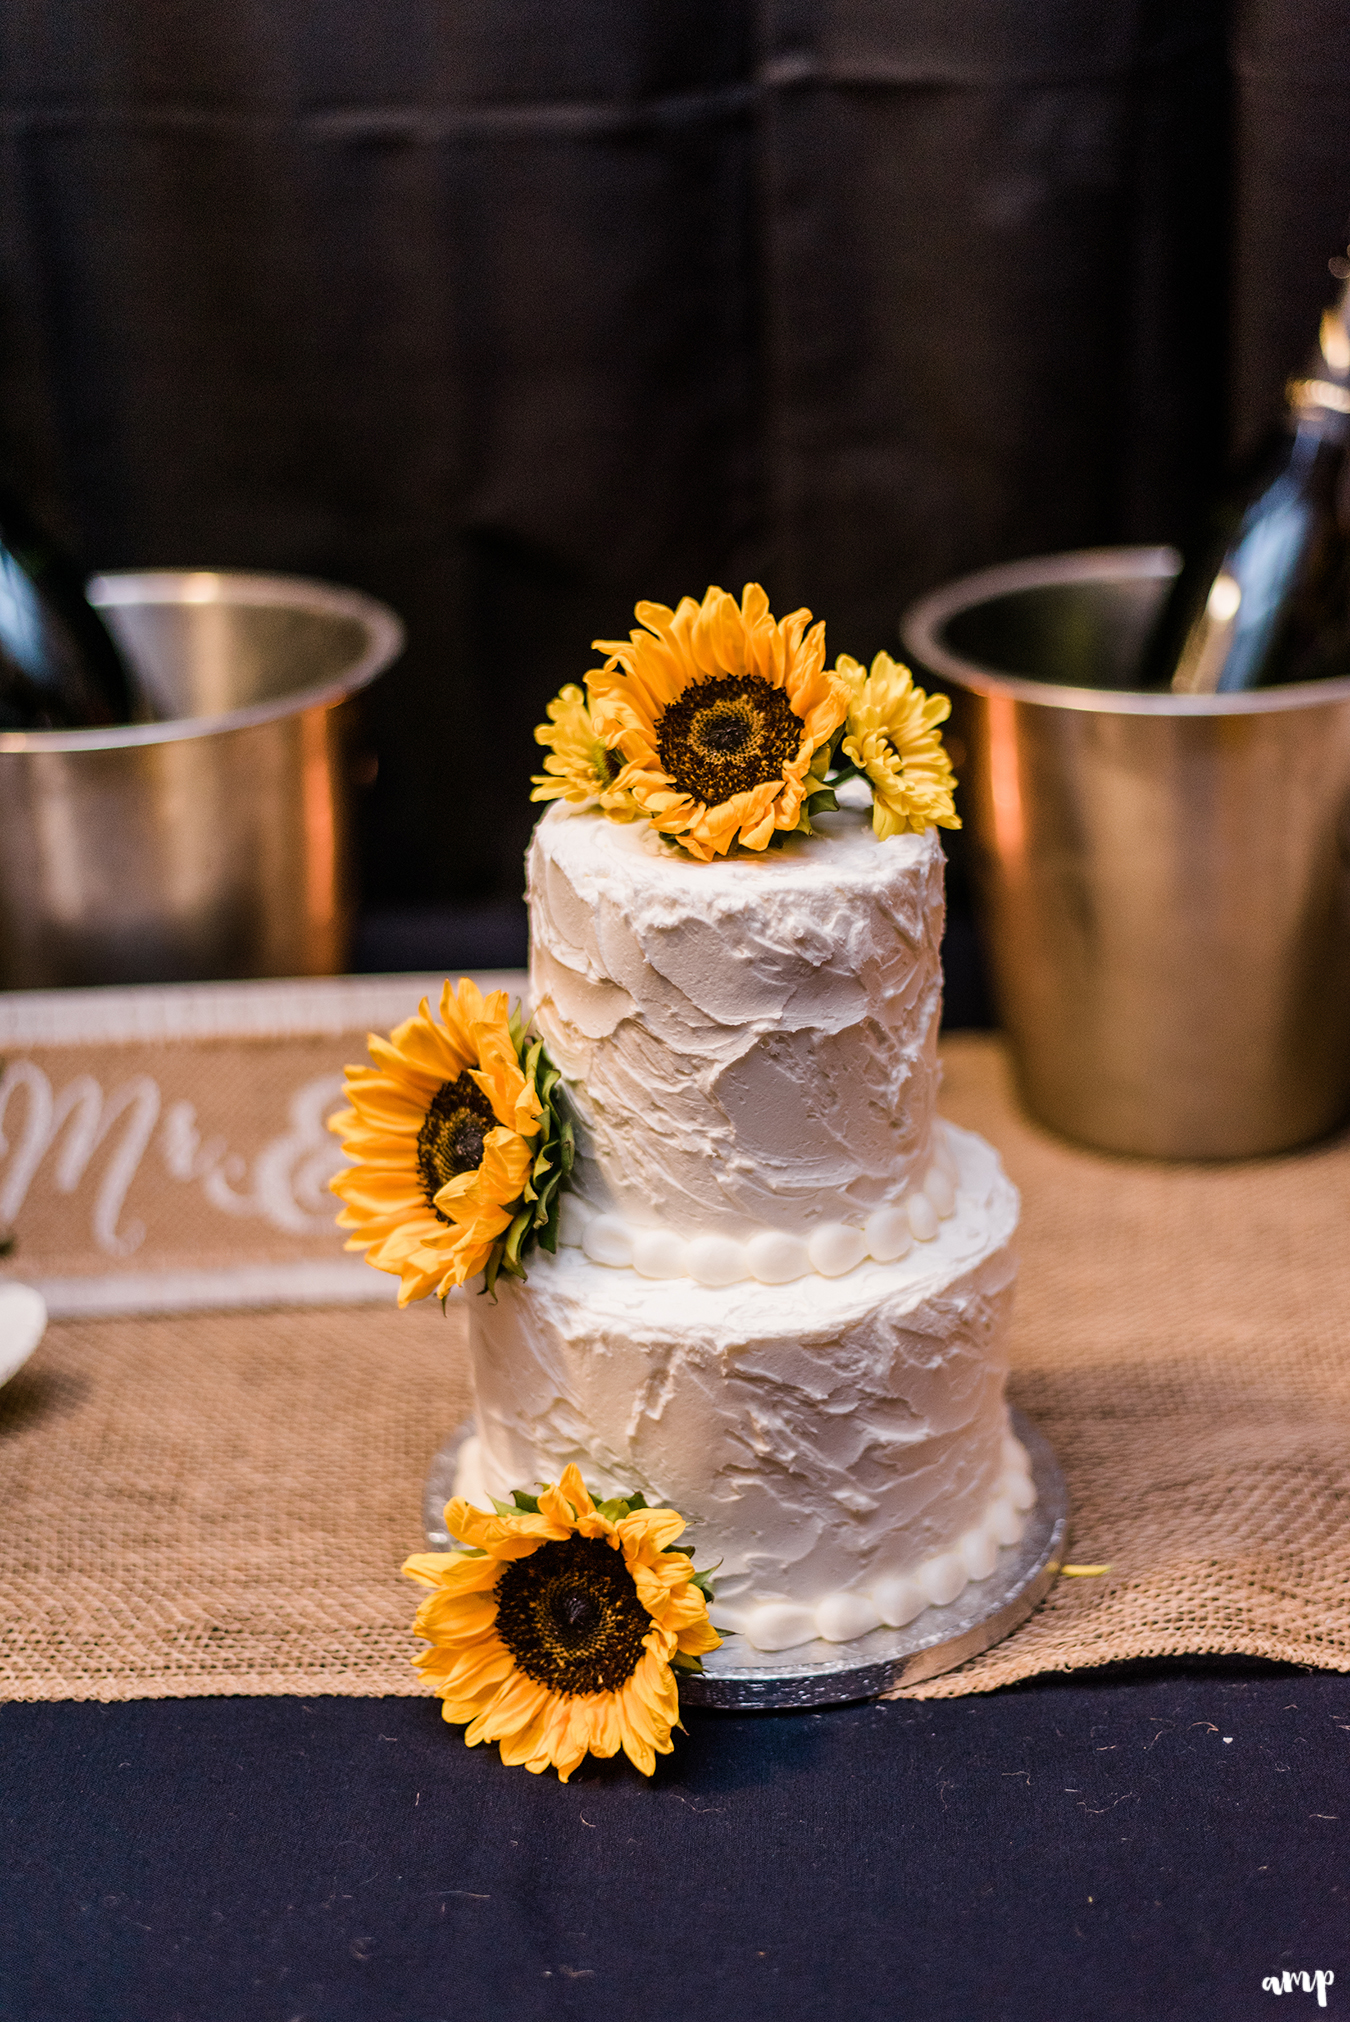 White frosted cake with sunflowers adorning it